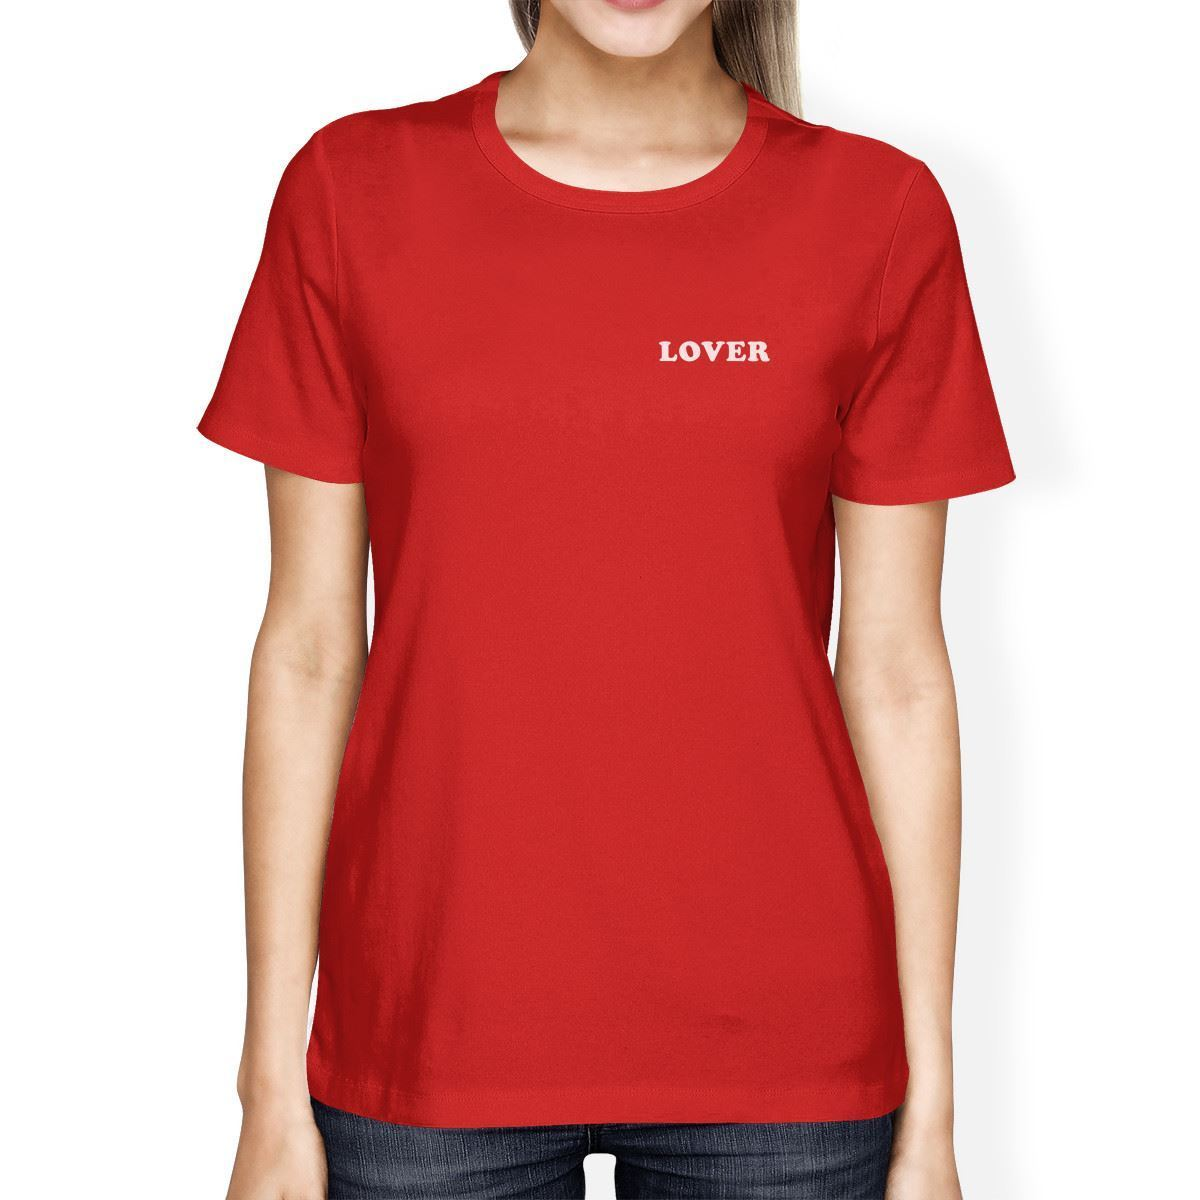 T shirt design red - Lover Women S Red T Shirt Cute Graphic Tee Gift Ideas For Birthdays Designer Women S T Shirt High Quality Ladies Anime